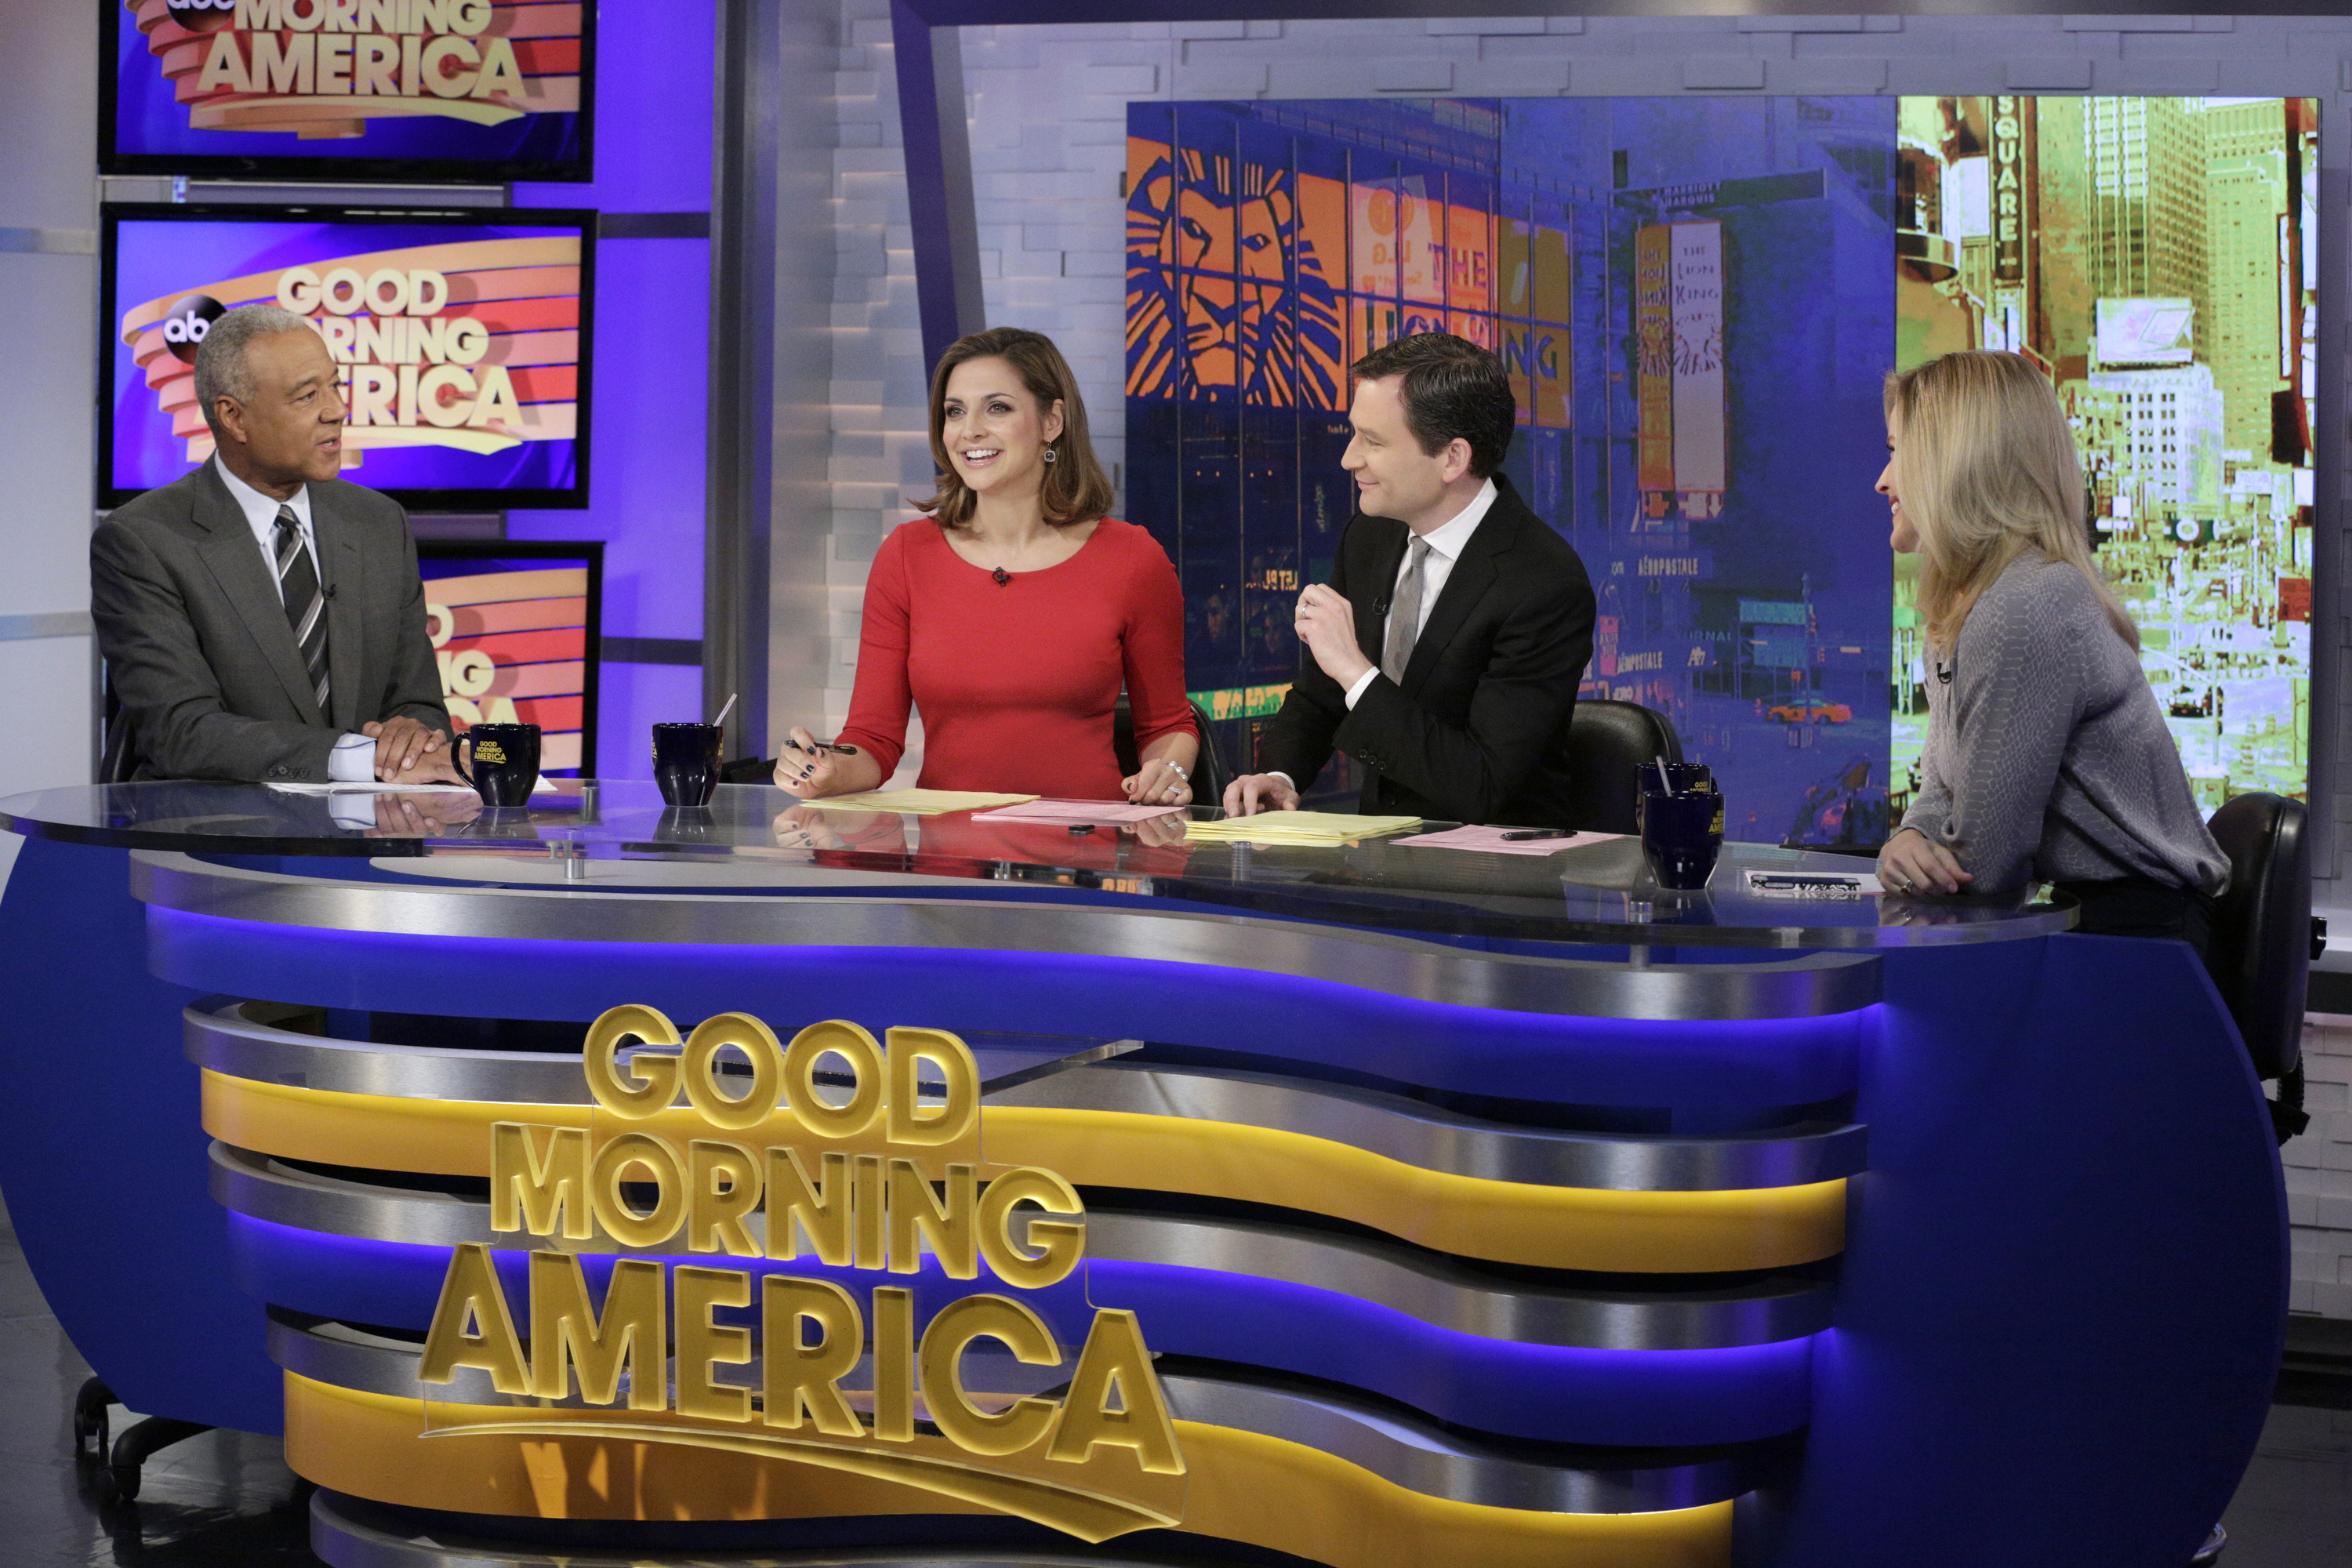 Good Morning America Sunday Edition : Good morning america weekend edition